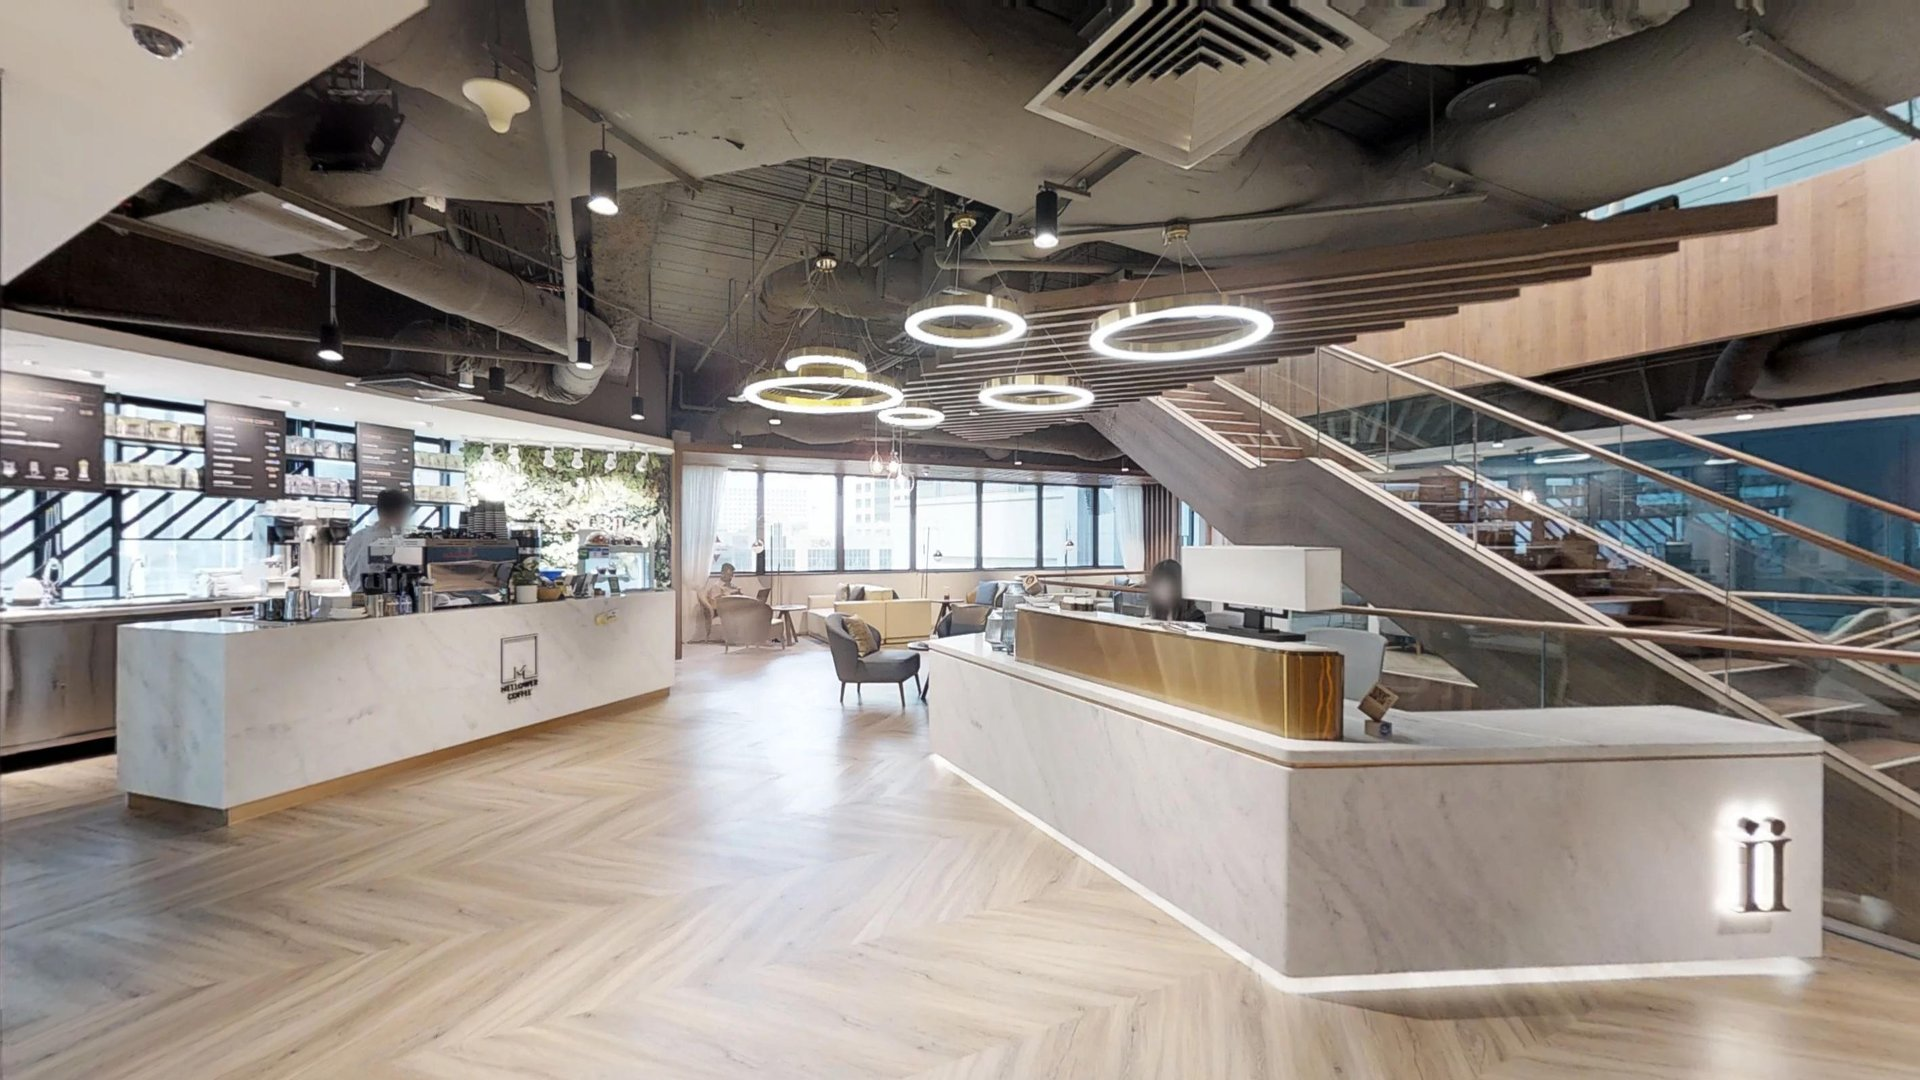 Distrii Singapore Coworking & Flexible WorkSpace with Smart Technology